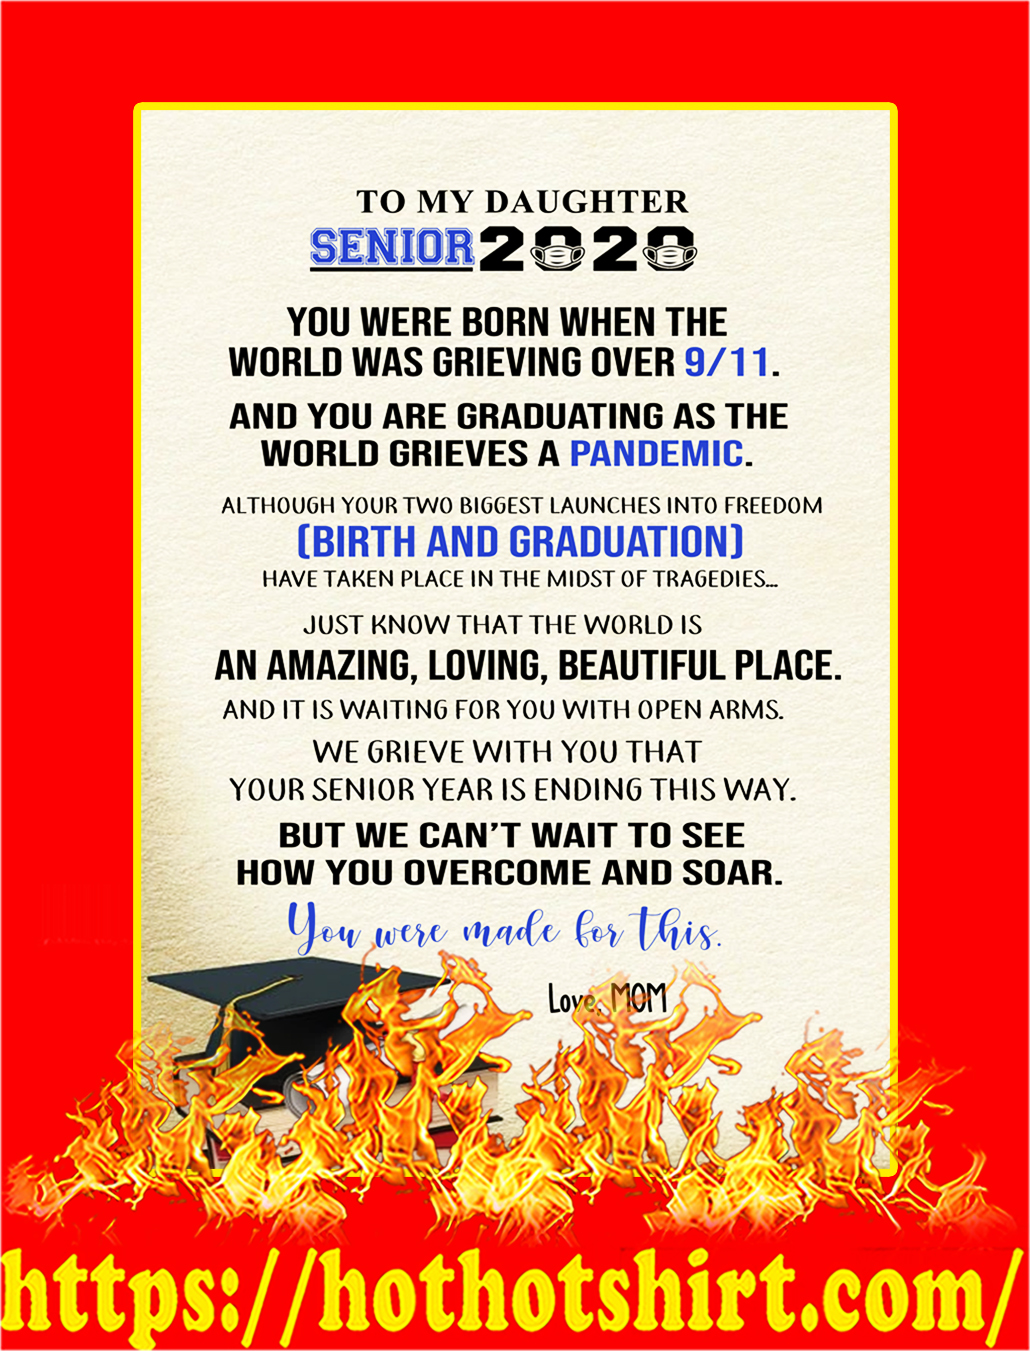 To my daughter senior 2020 mom poster - A4